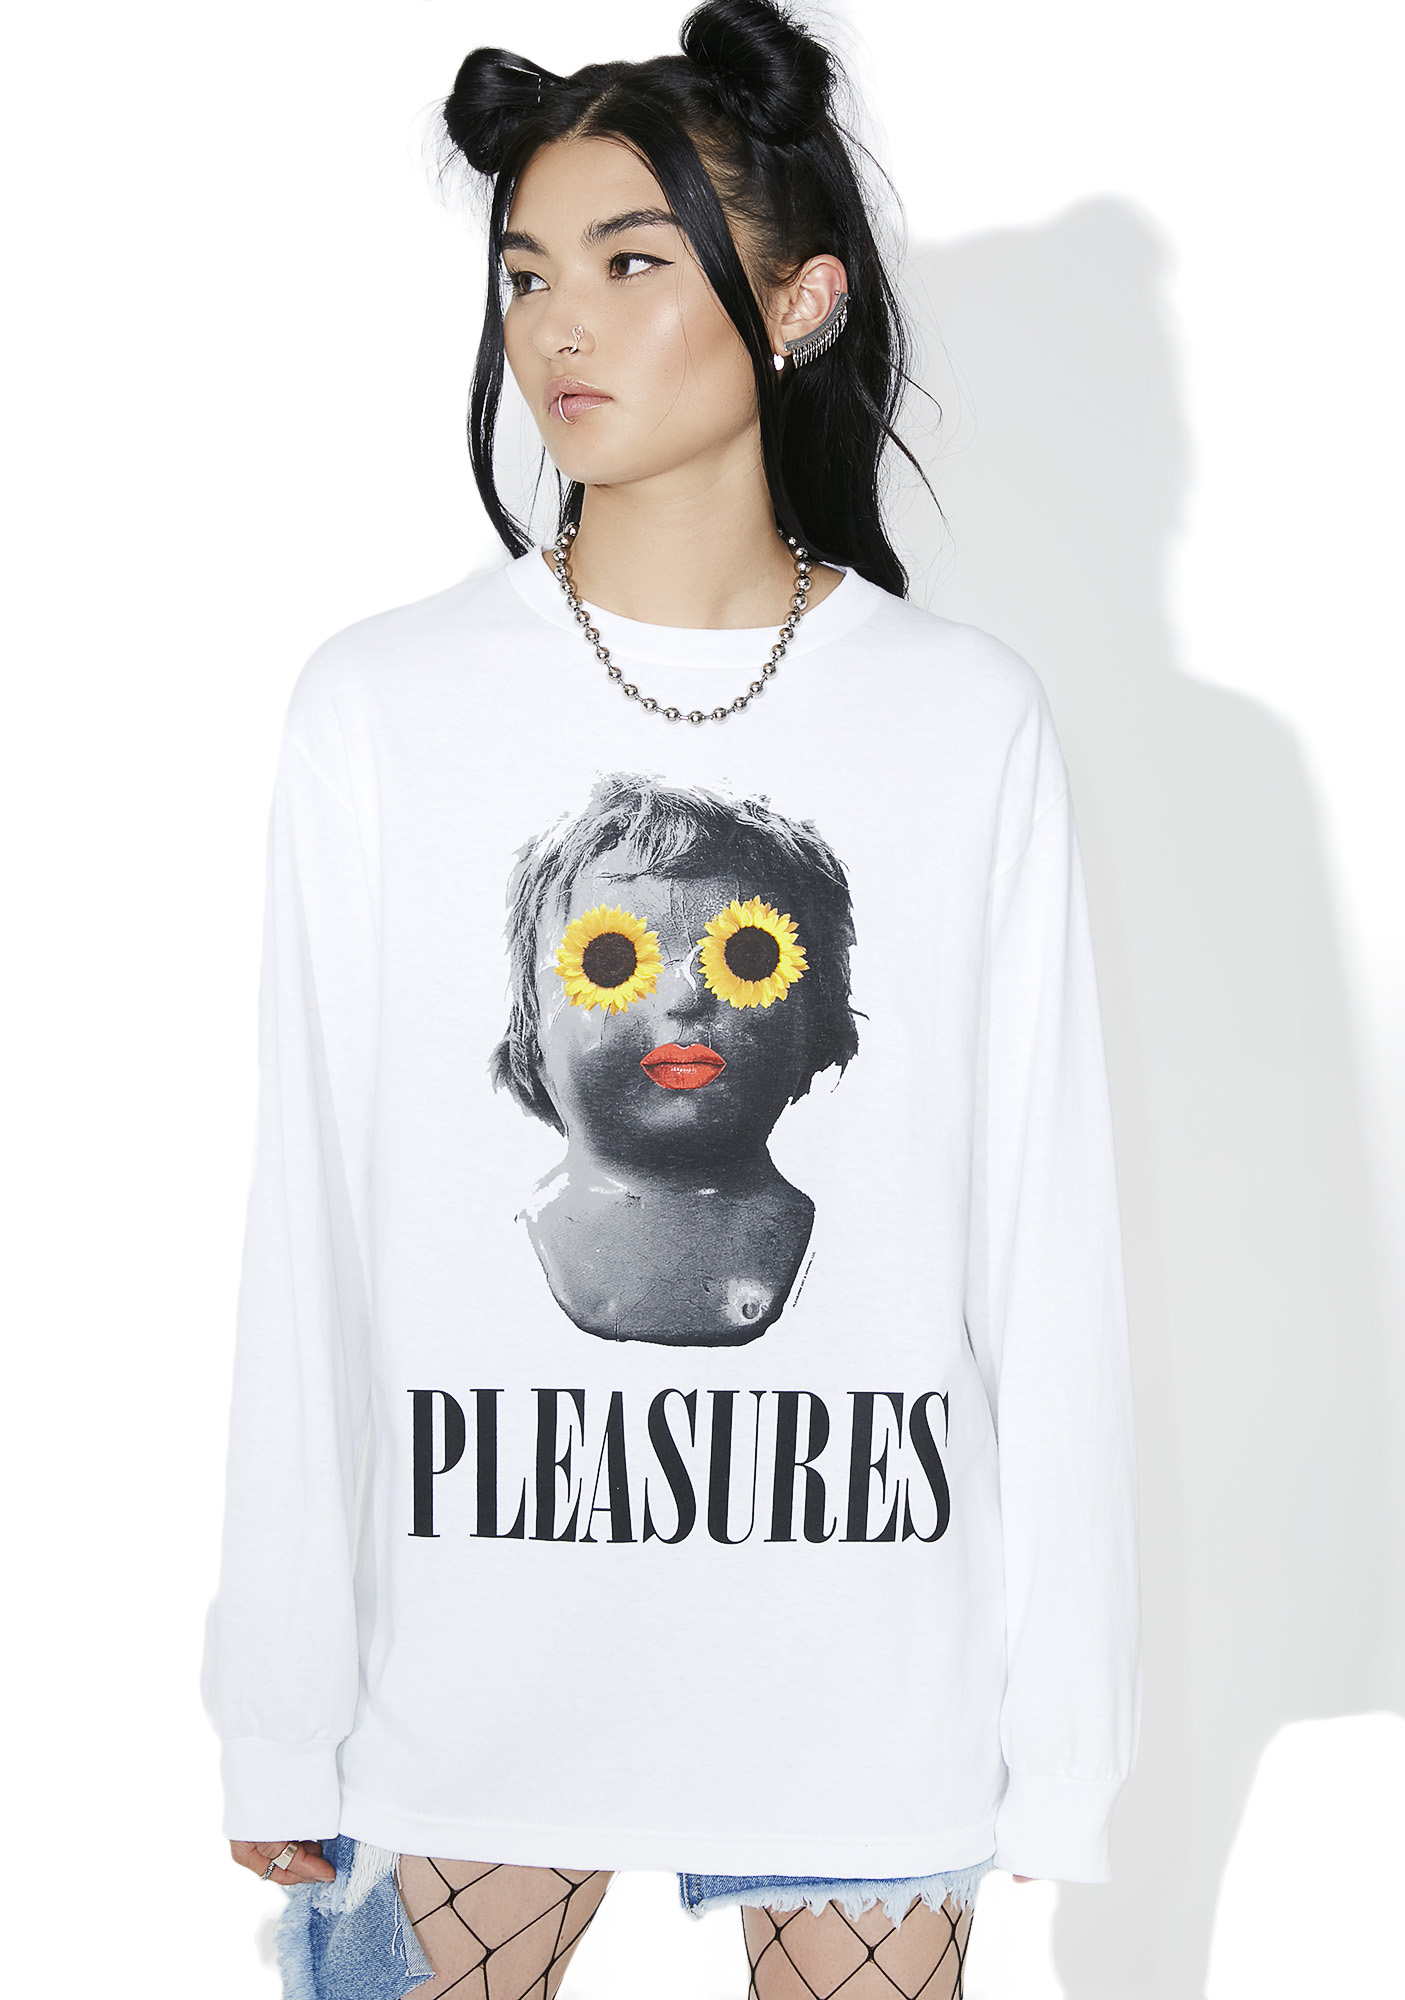 Pleasures Flower Child Long Sleeve Tee